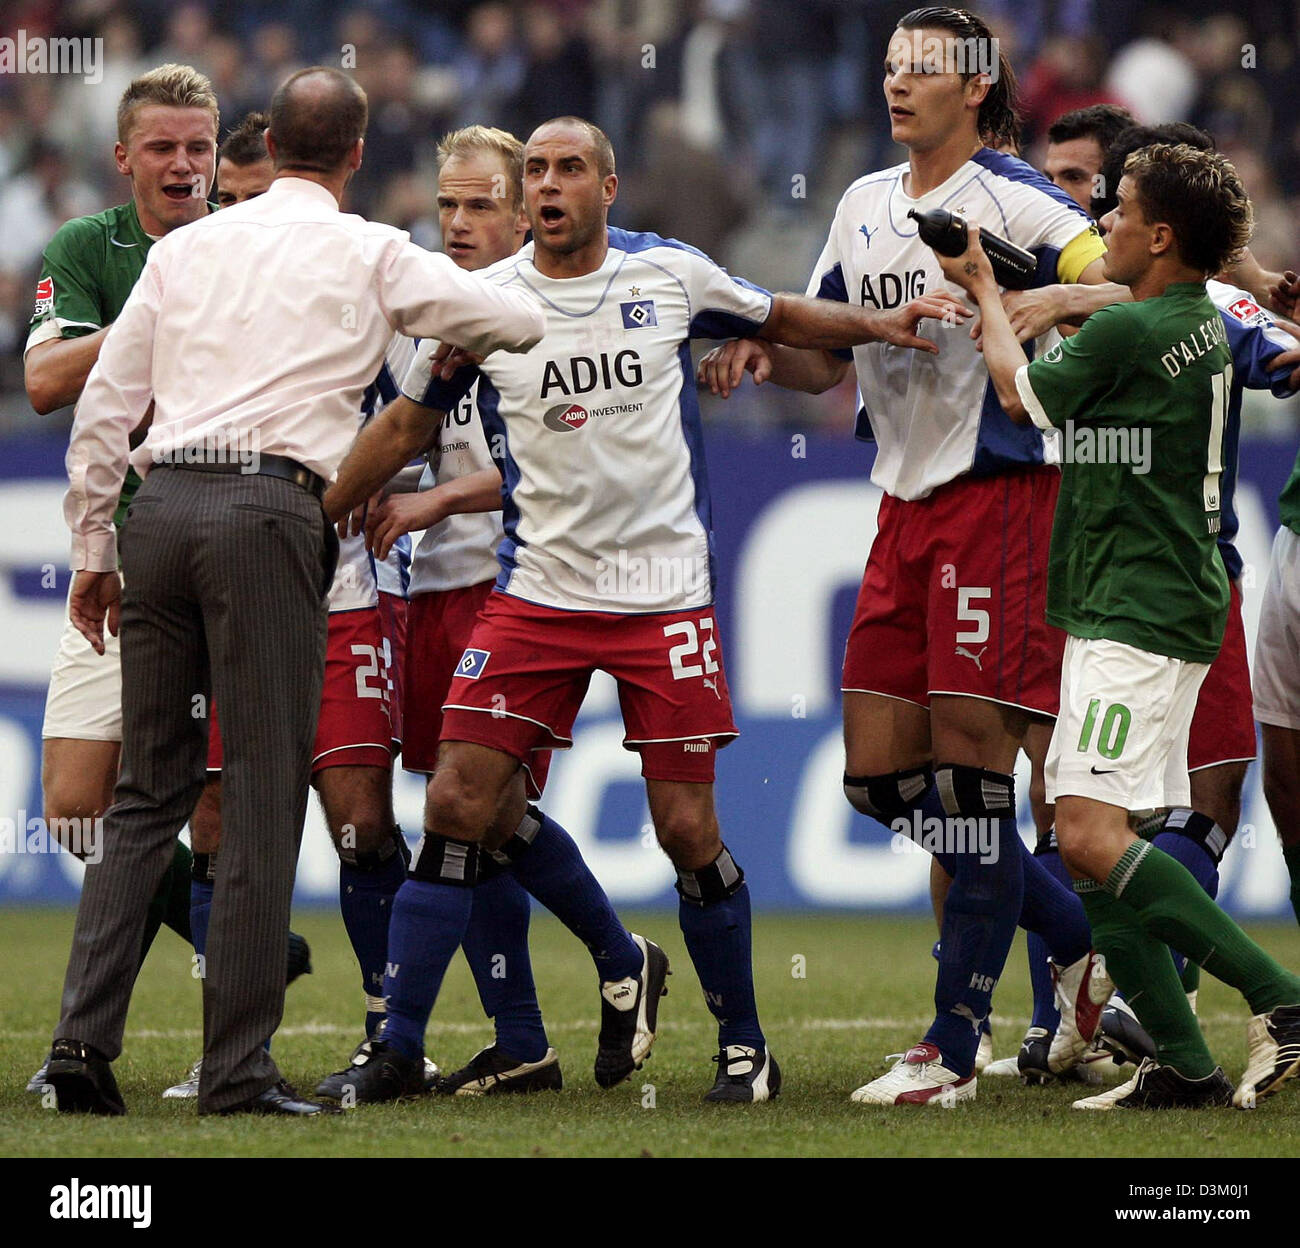 (dpa) - Coach of Wolfsburg Holger Fach (2nd L) and Rafael van der Vaart (B) of Hamburg argue with each other after Stock Photo